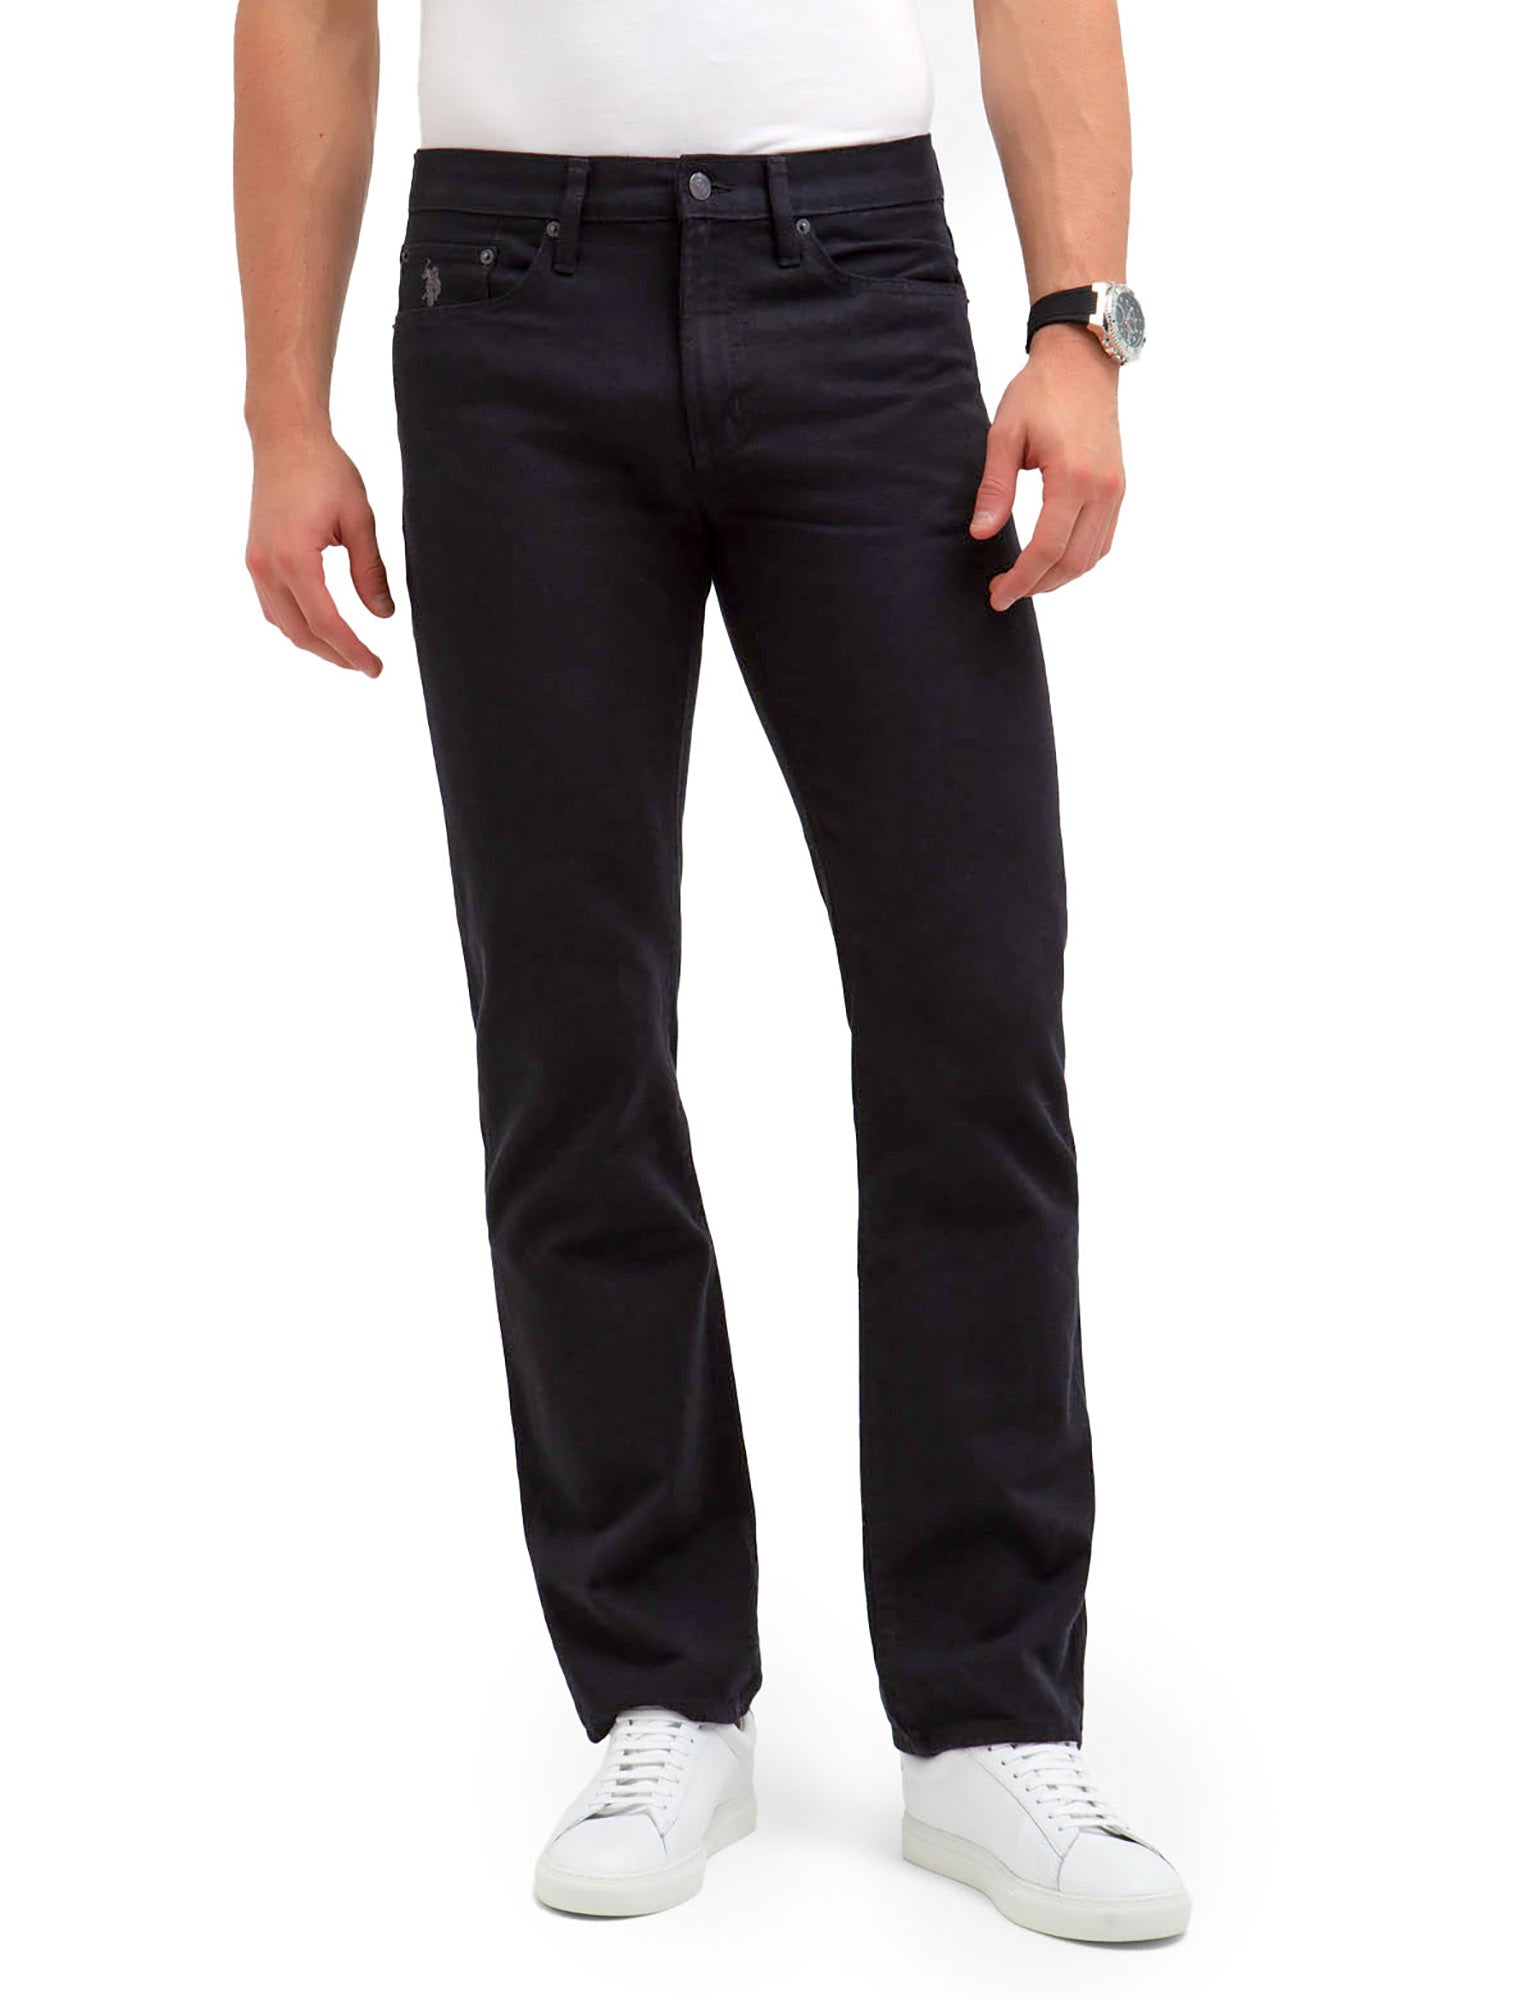 U.S. Polo Assn. - Mens 5 Pocket Rigid Straight Fit Jeans